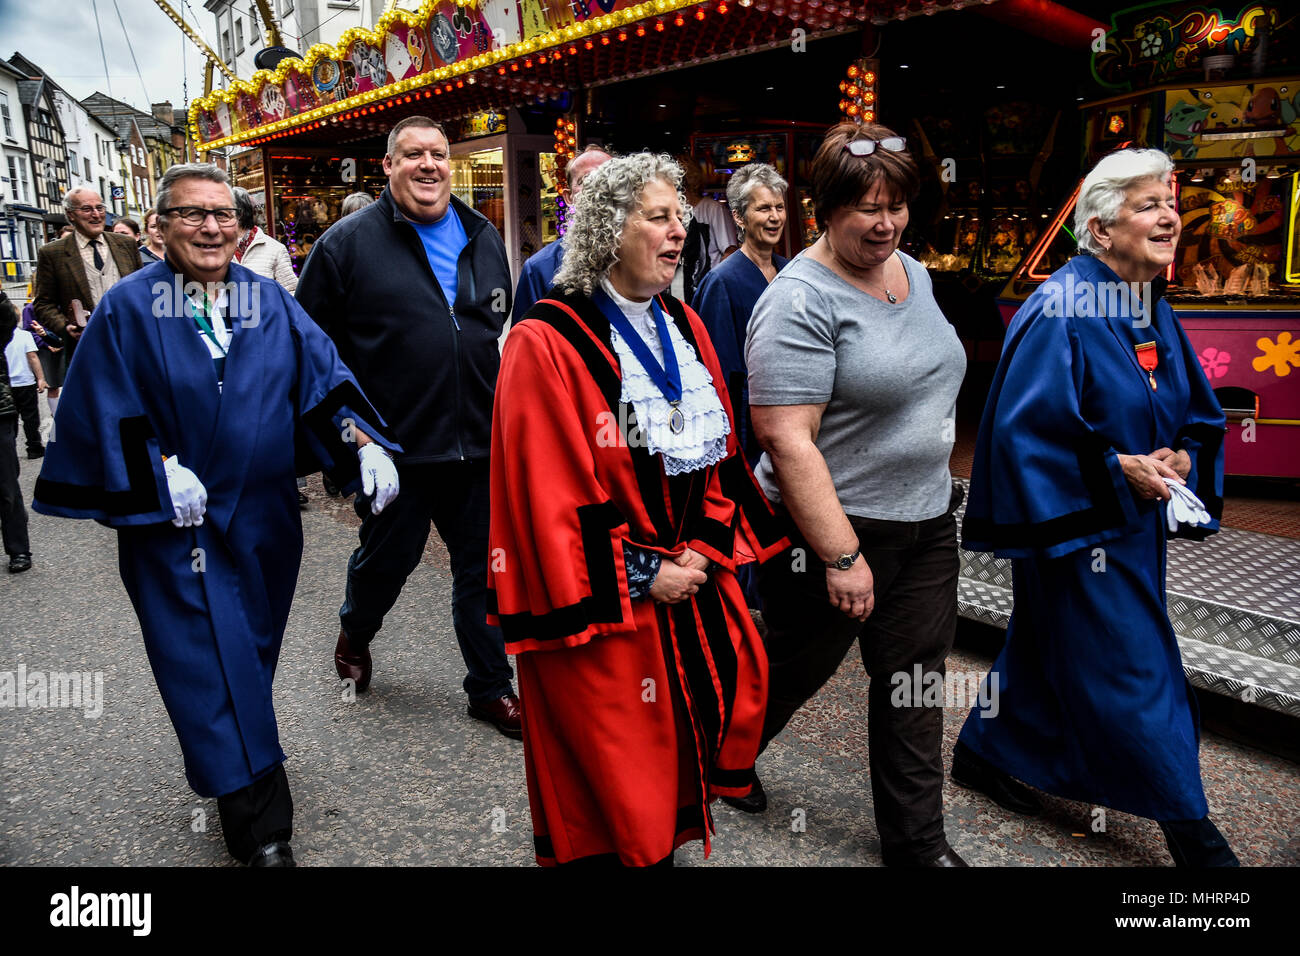 LEOMINSTER, UNITED KINGDOM - MAY 03. Leominster Mayoress Jenny Bartlett walks through the fair with Joanne Morris one of the organisers of the fair during the opening ceremony in Leominster on May 3rd, 2018. Credit: Jim Wood/Alamy Live News - Stock Image